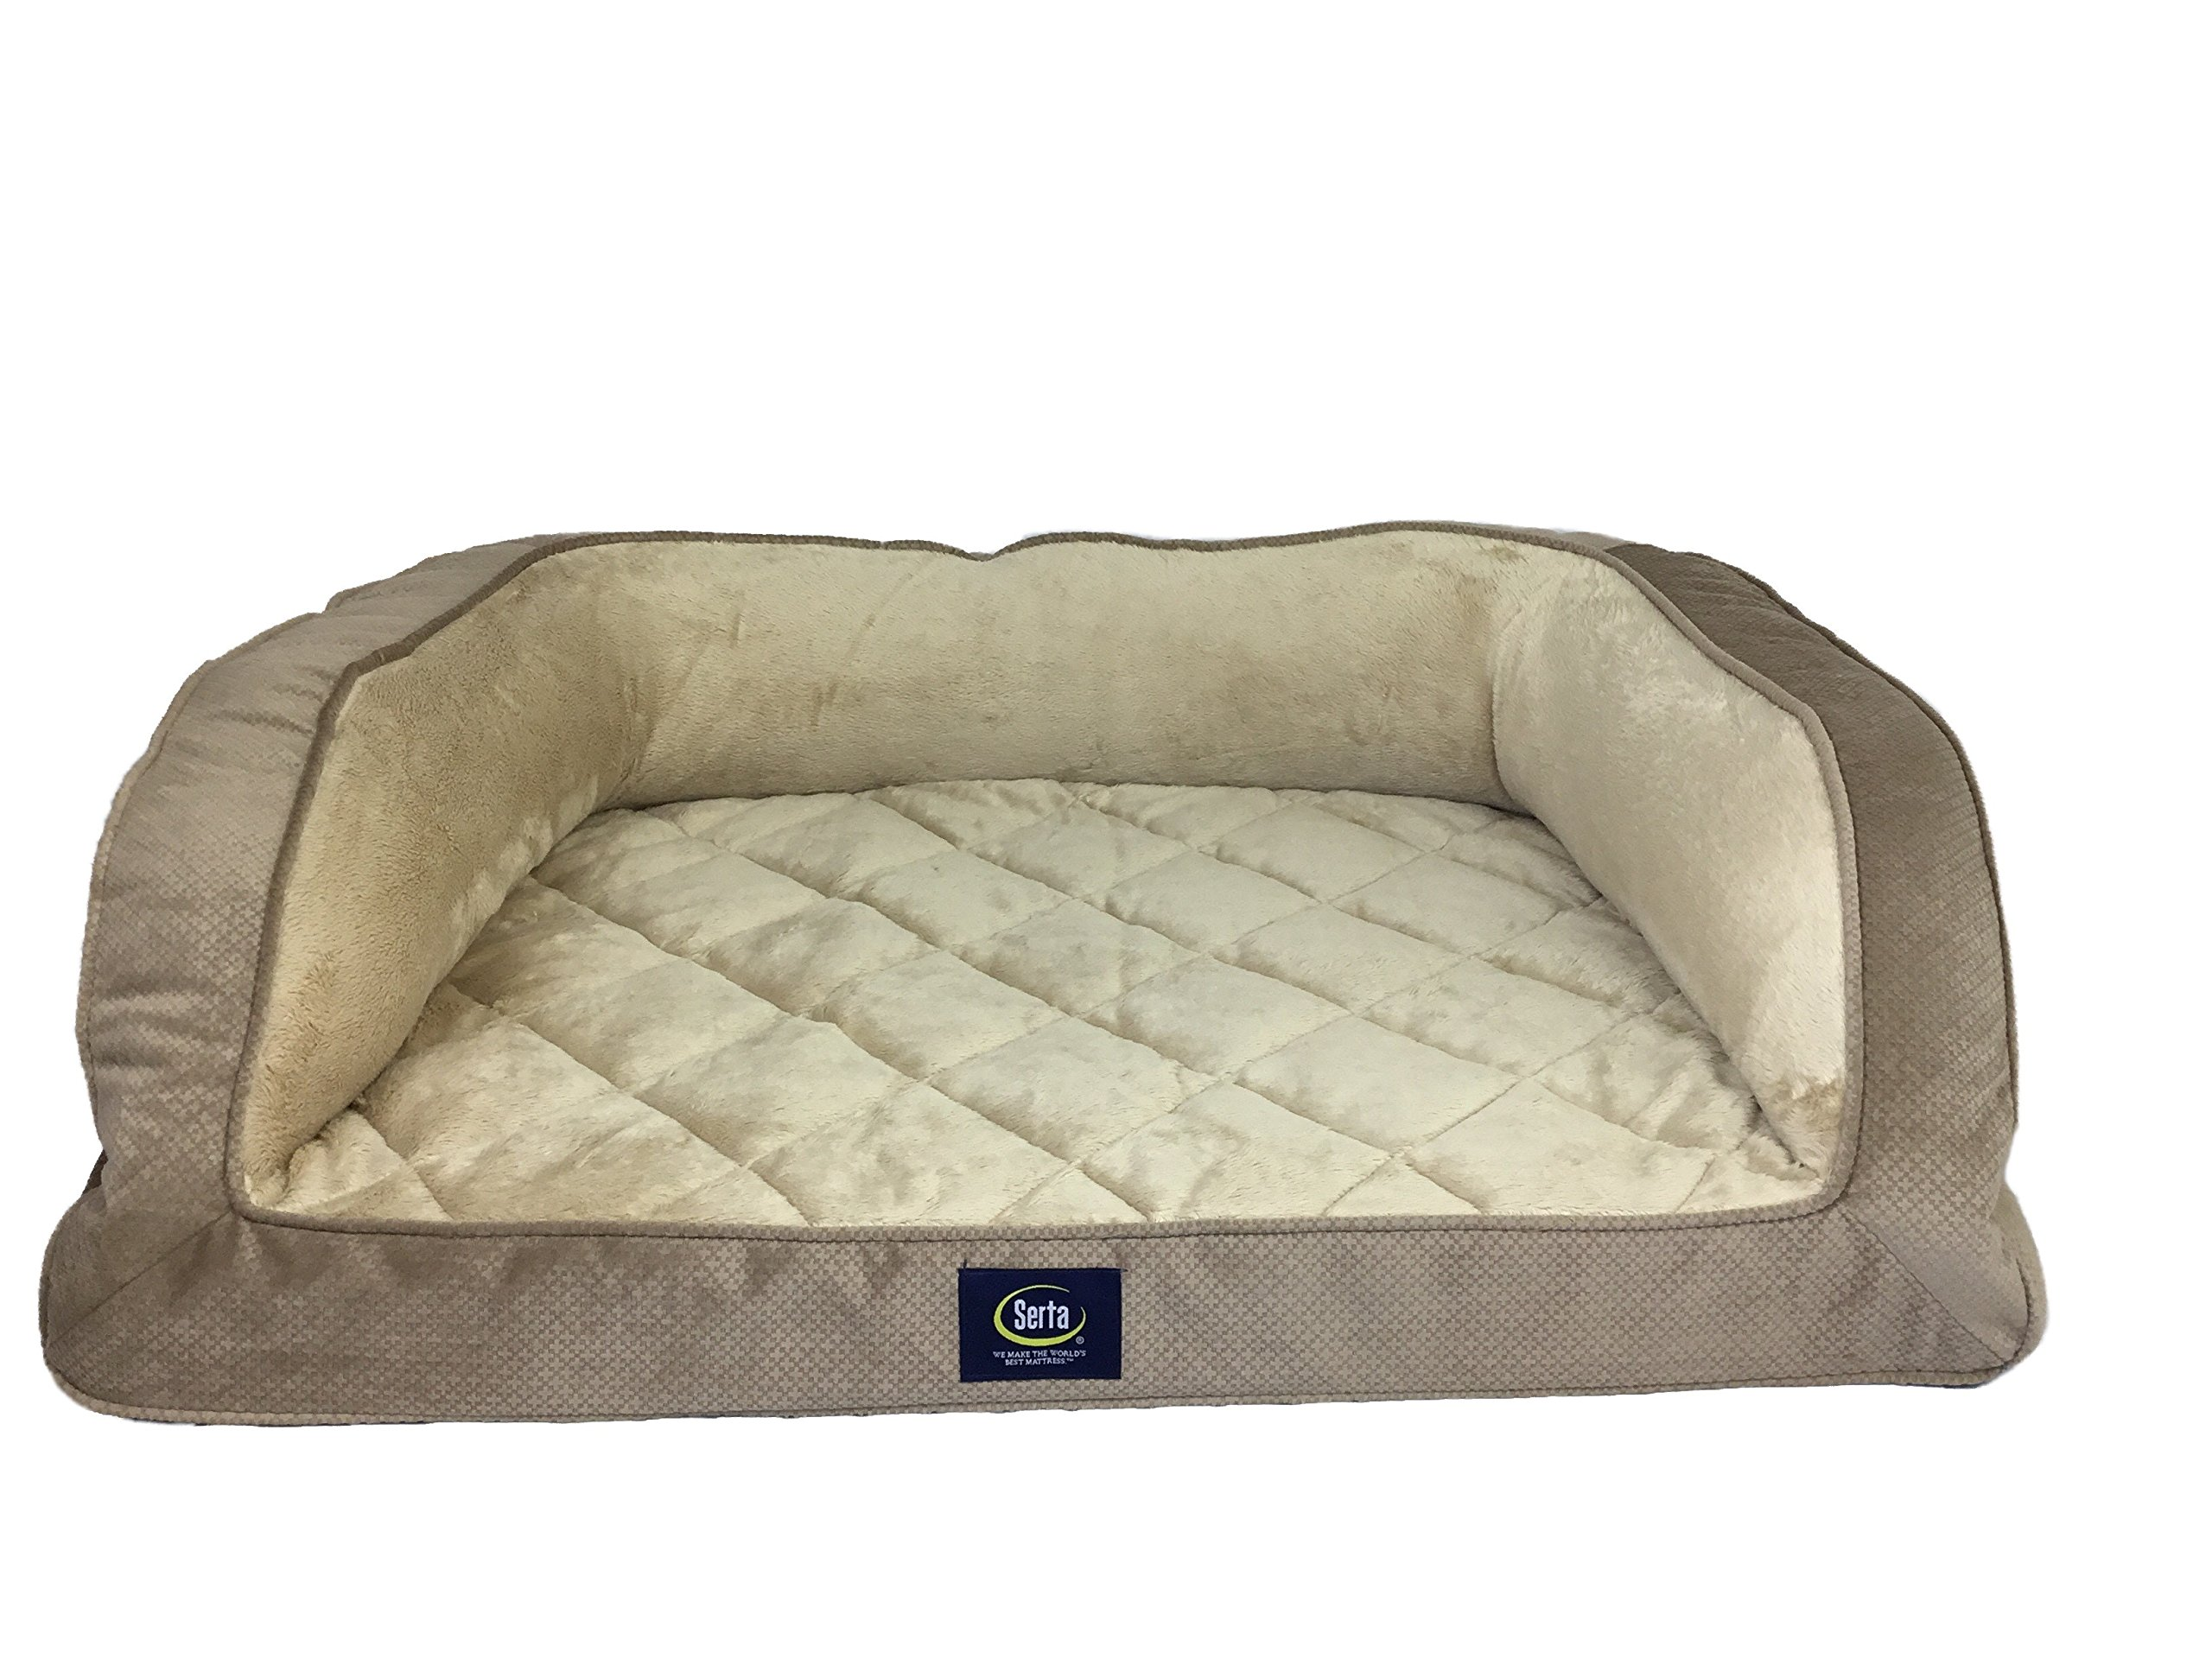 Serta Orthopedic Quilted Couch Tan Large